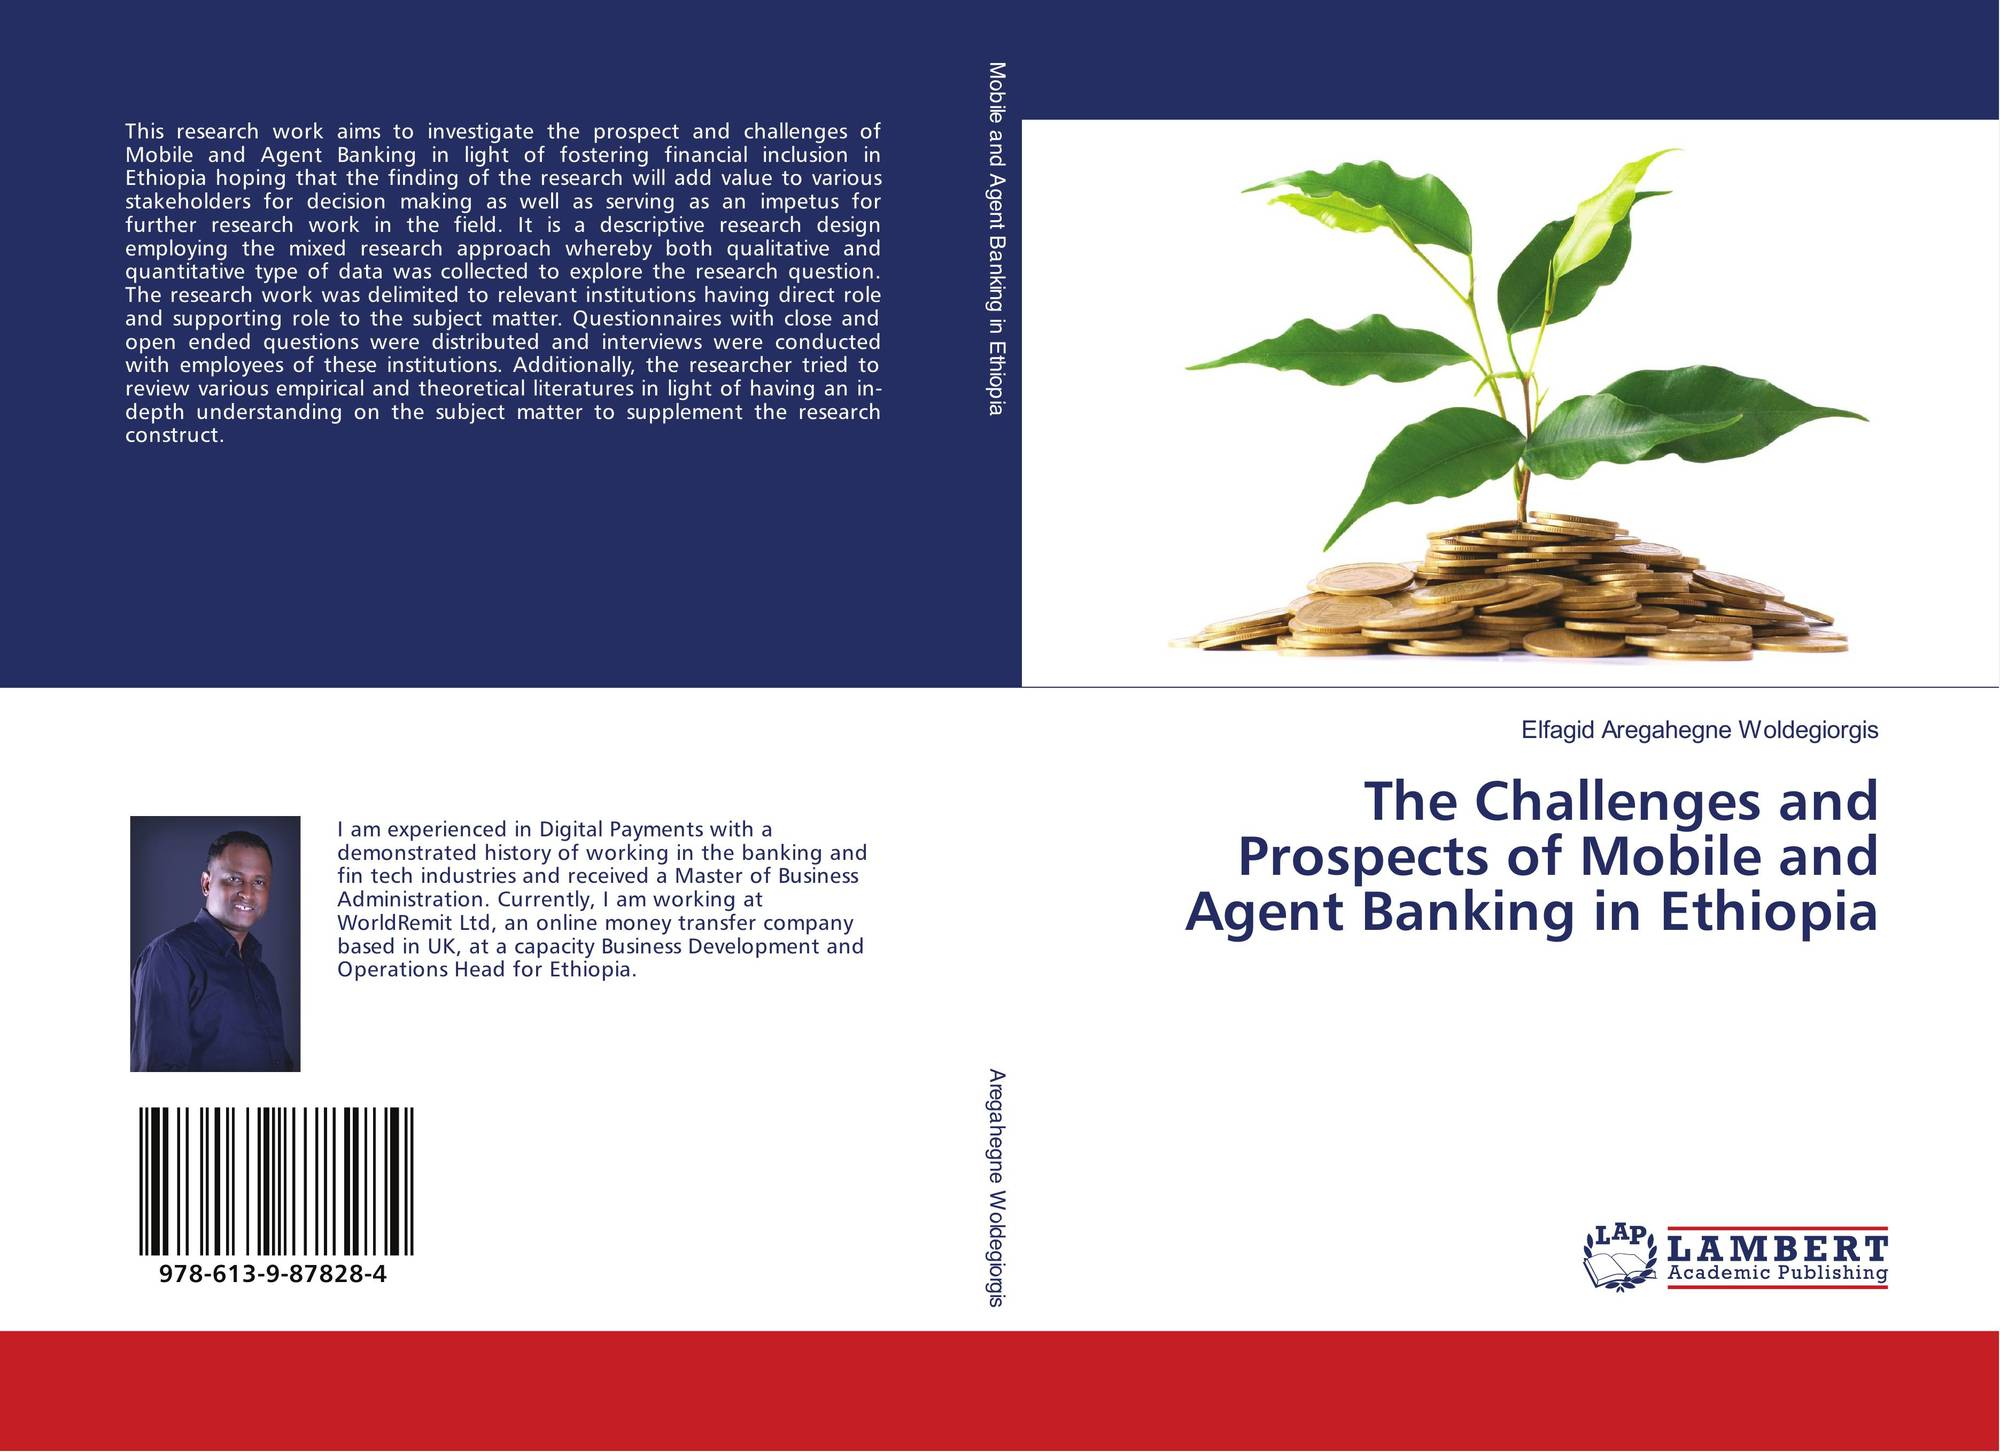 The Challenges and Prospects of Mobile and Agent Banking in